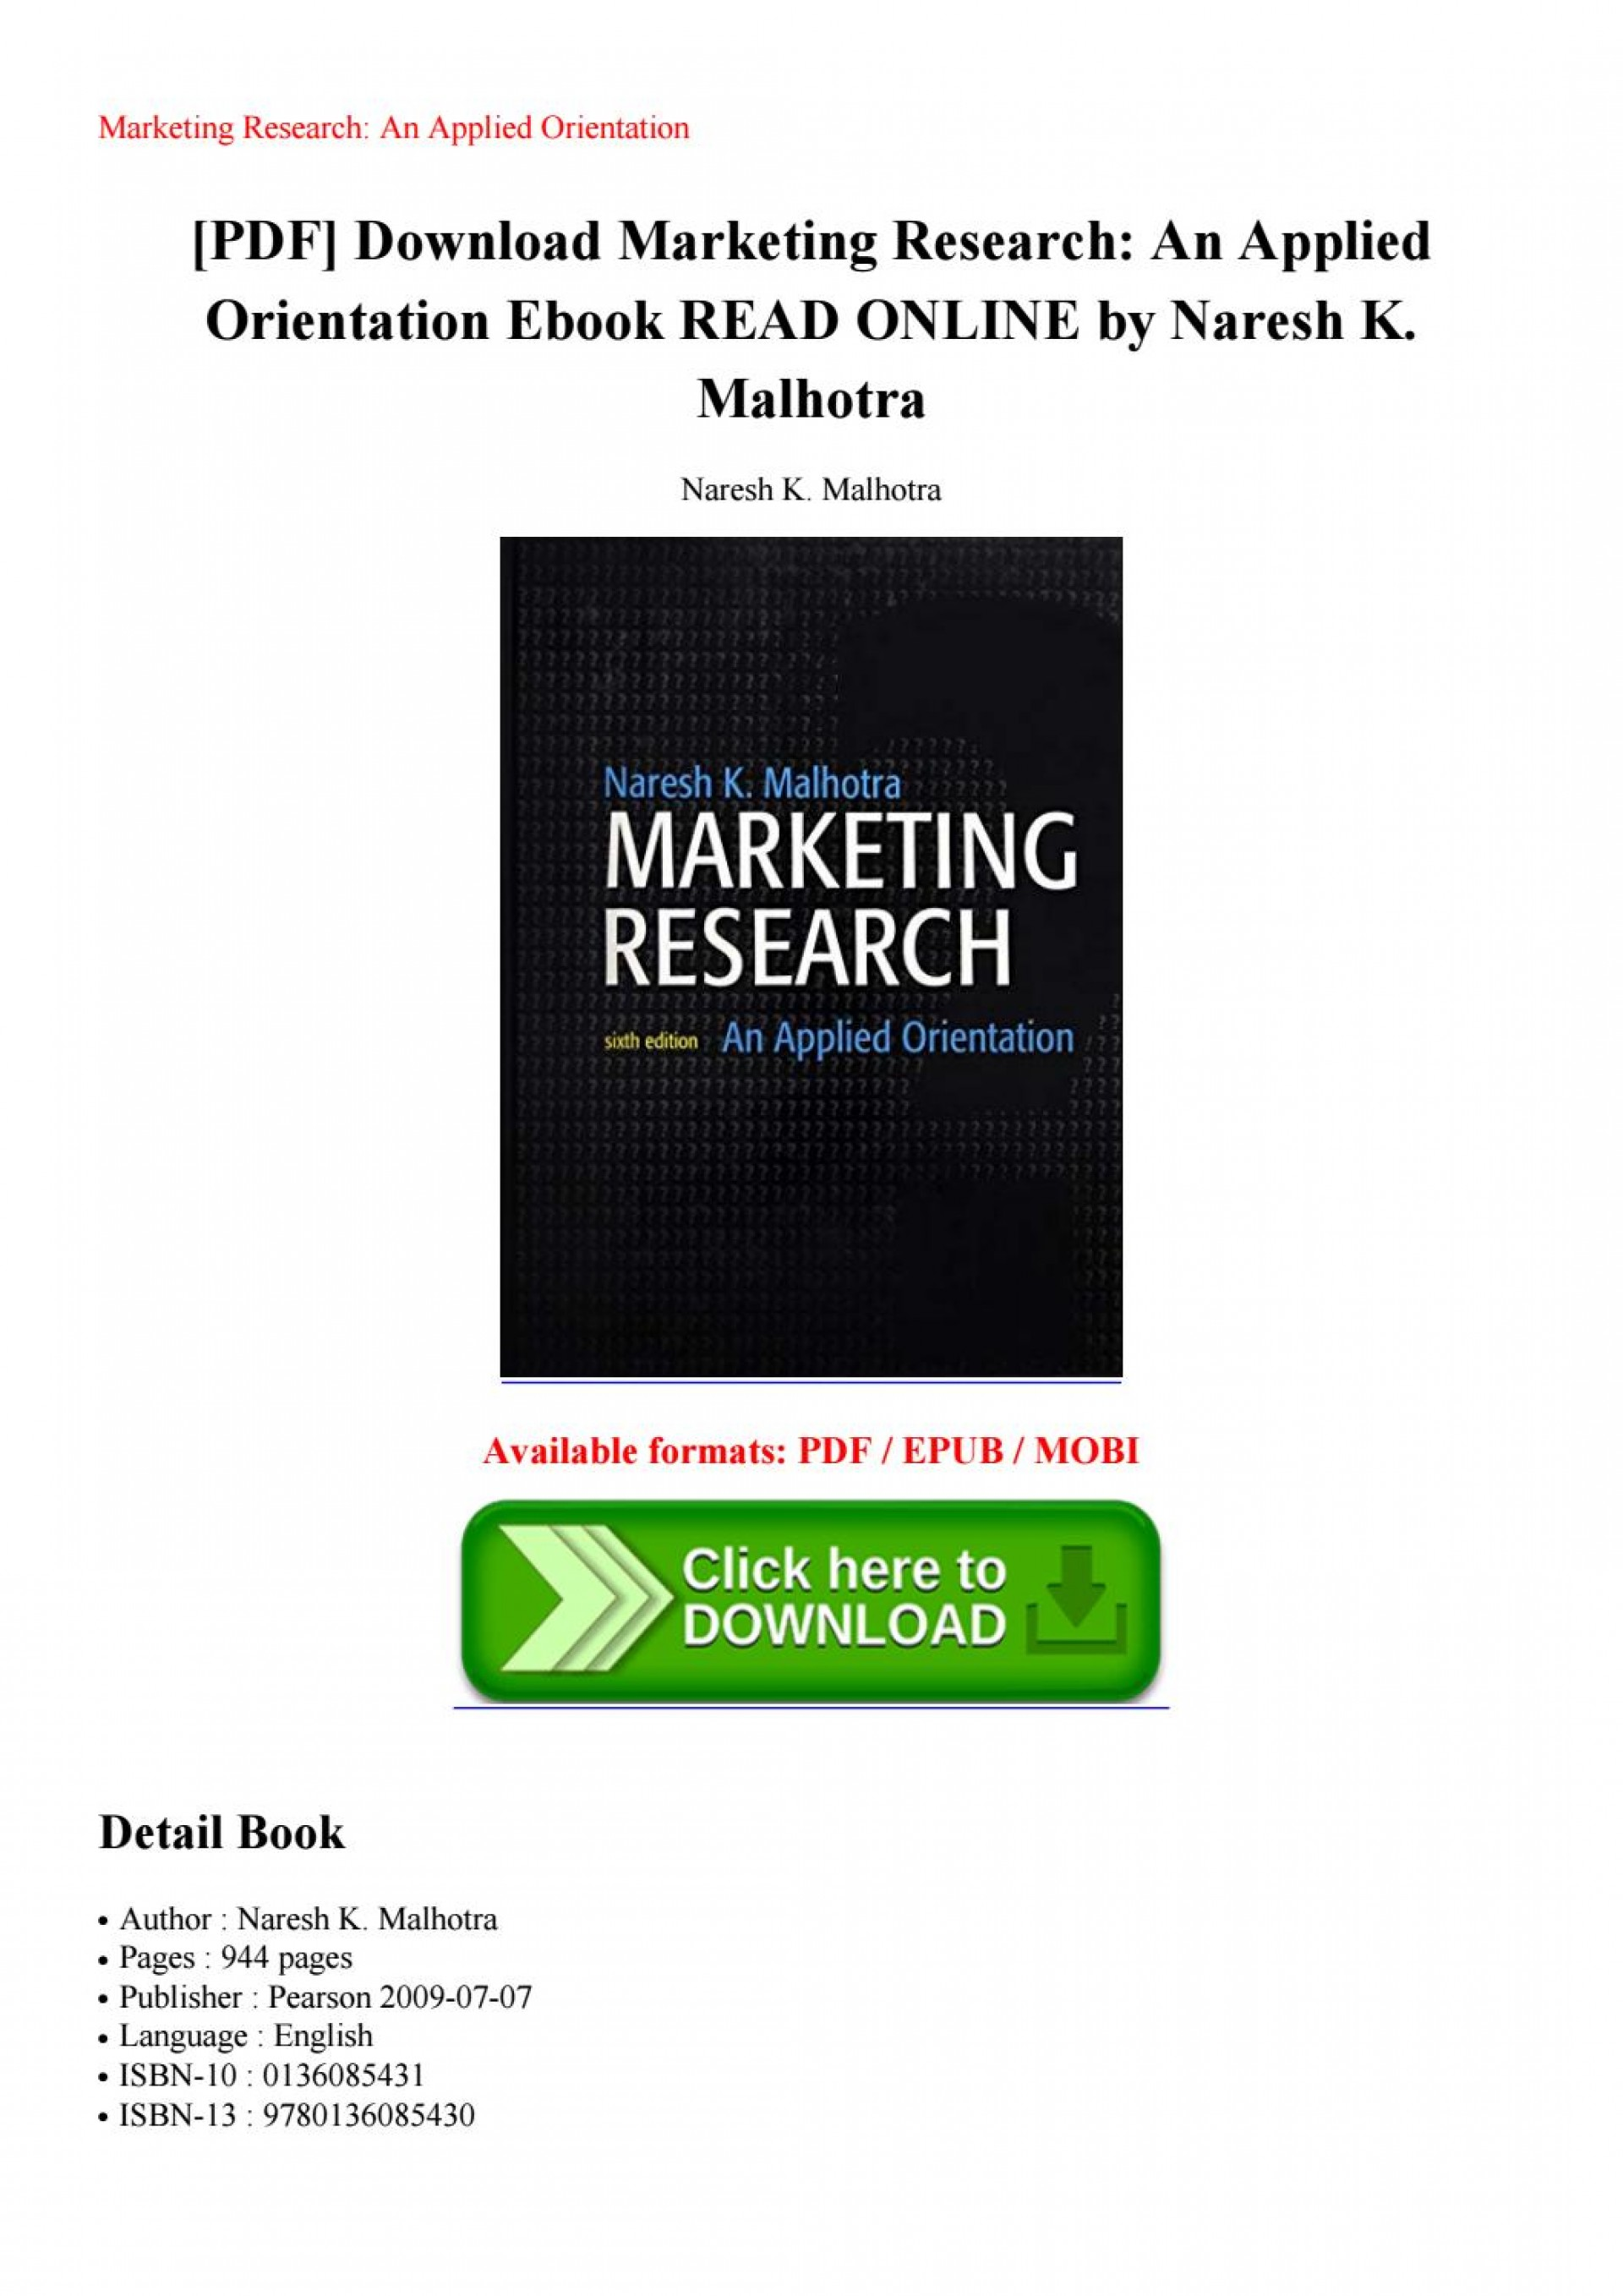 022 Page 1 Marketing Researchs Pdf Free Download Impressive Research Papers 1920